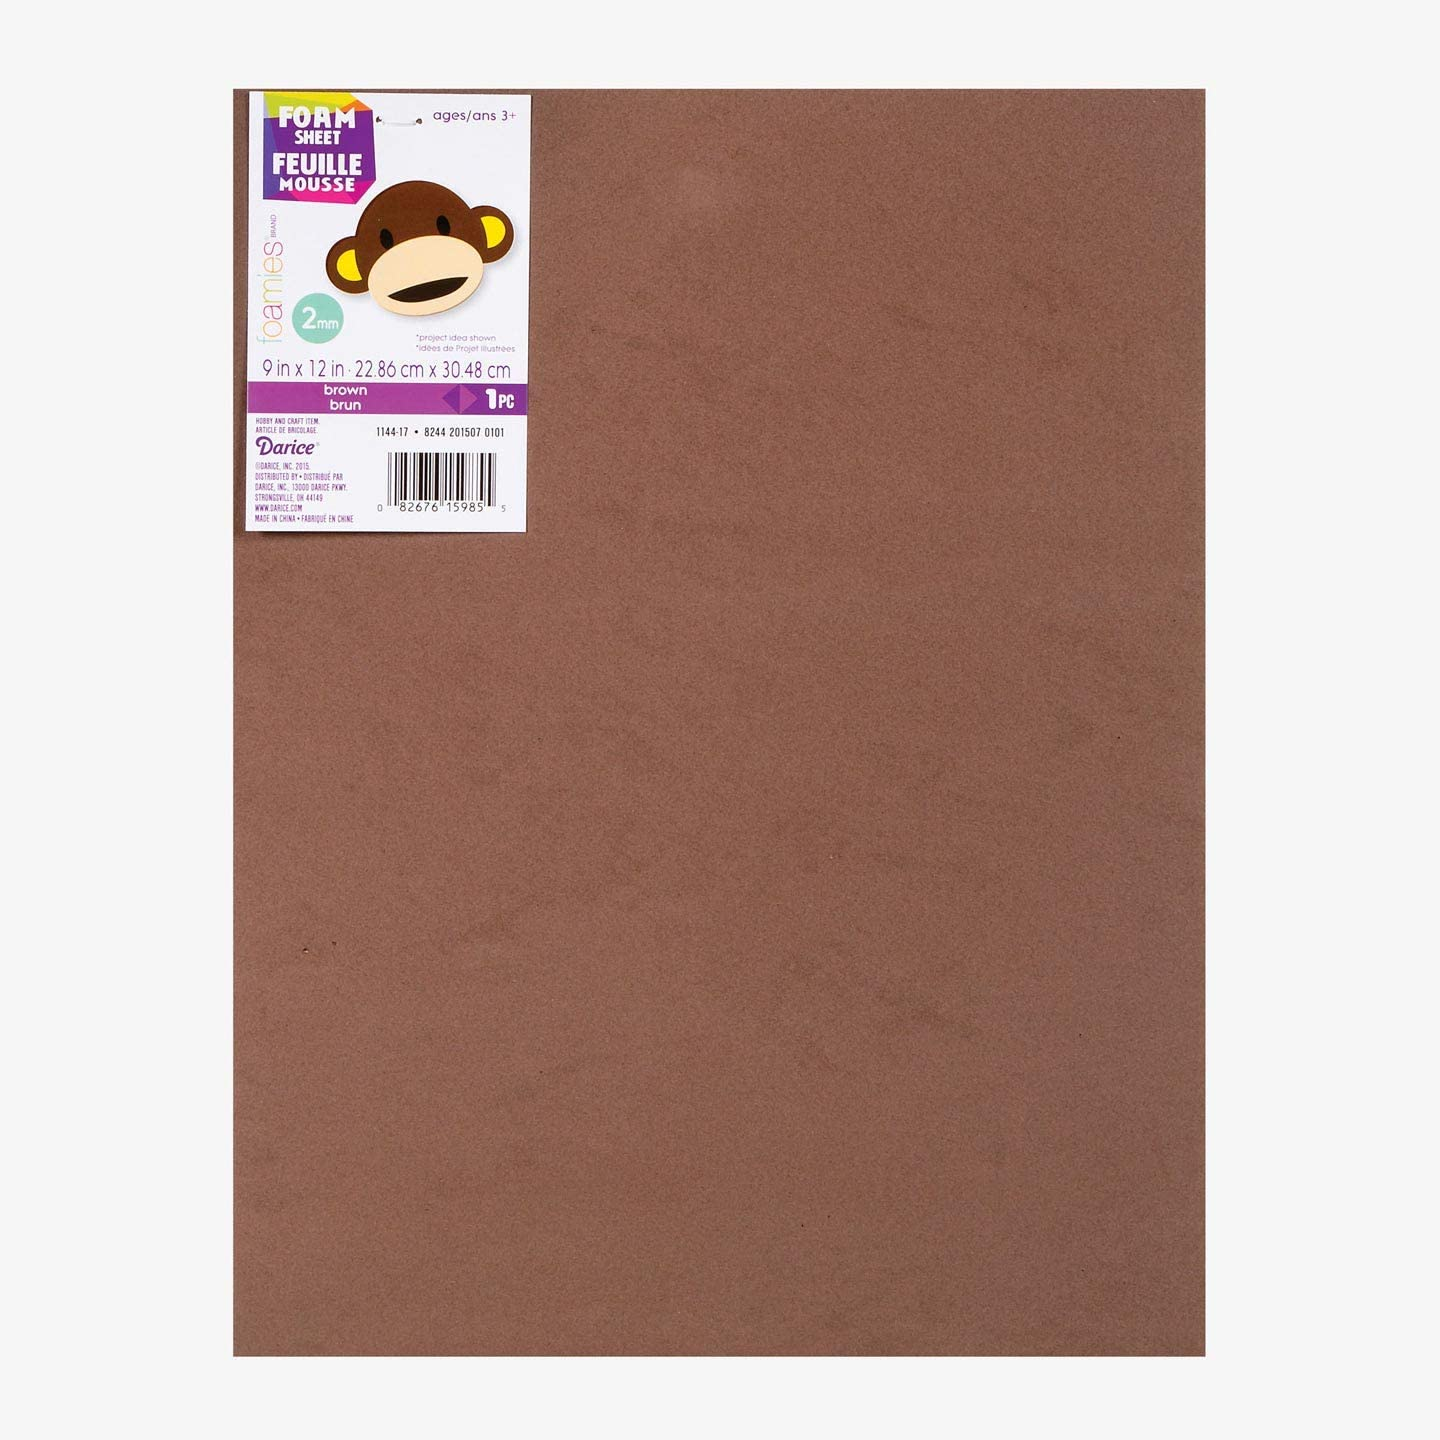 Darice Foamies Foam Sheet Brown 2mm Thick 9 x 12 inches (10-Pack) 1144-17